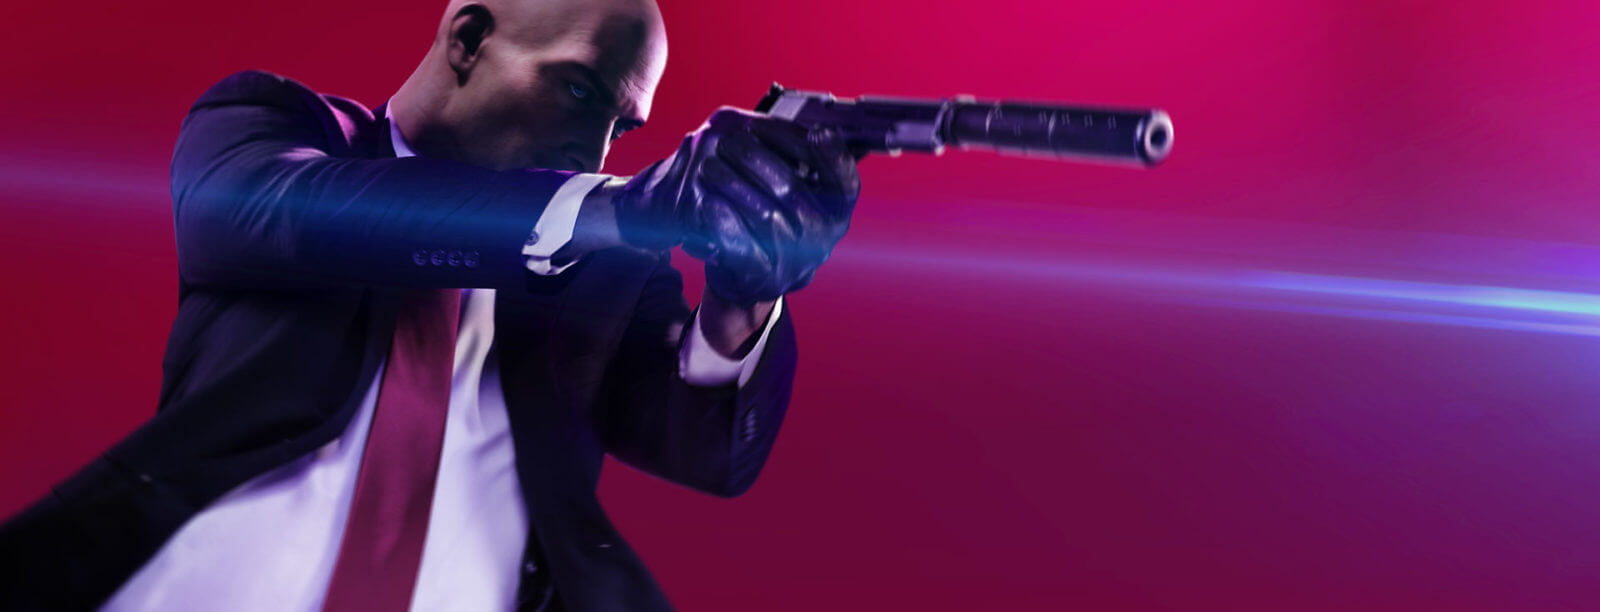 hitman-2-normal-hero-01-ps4-us-11jun18-1600x612.jpg